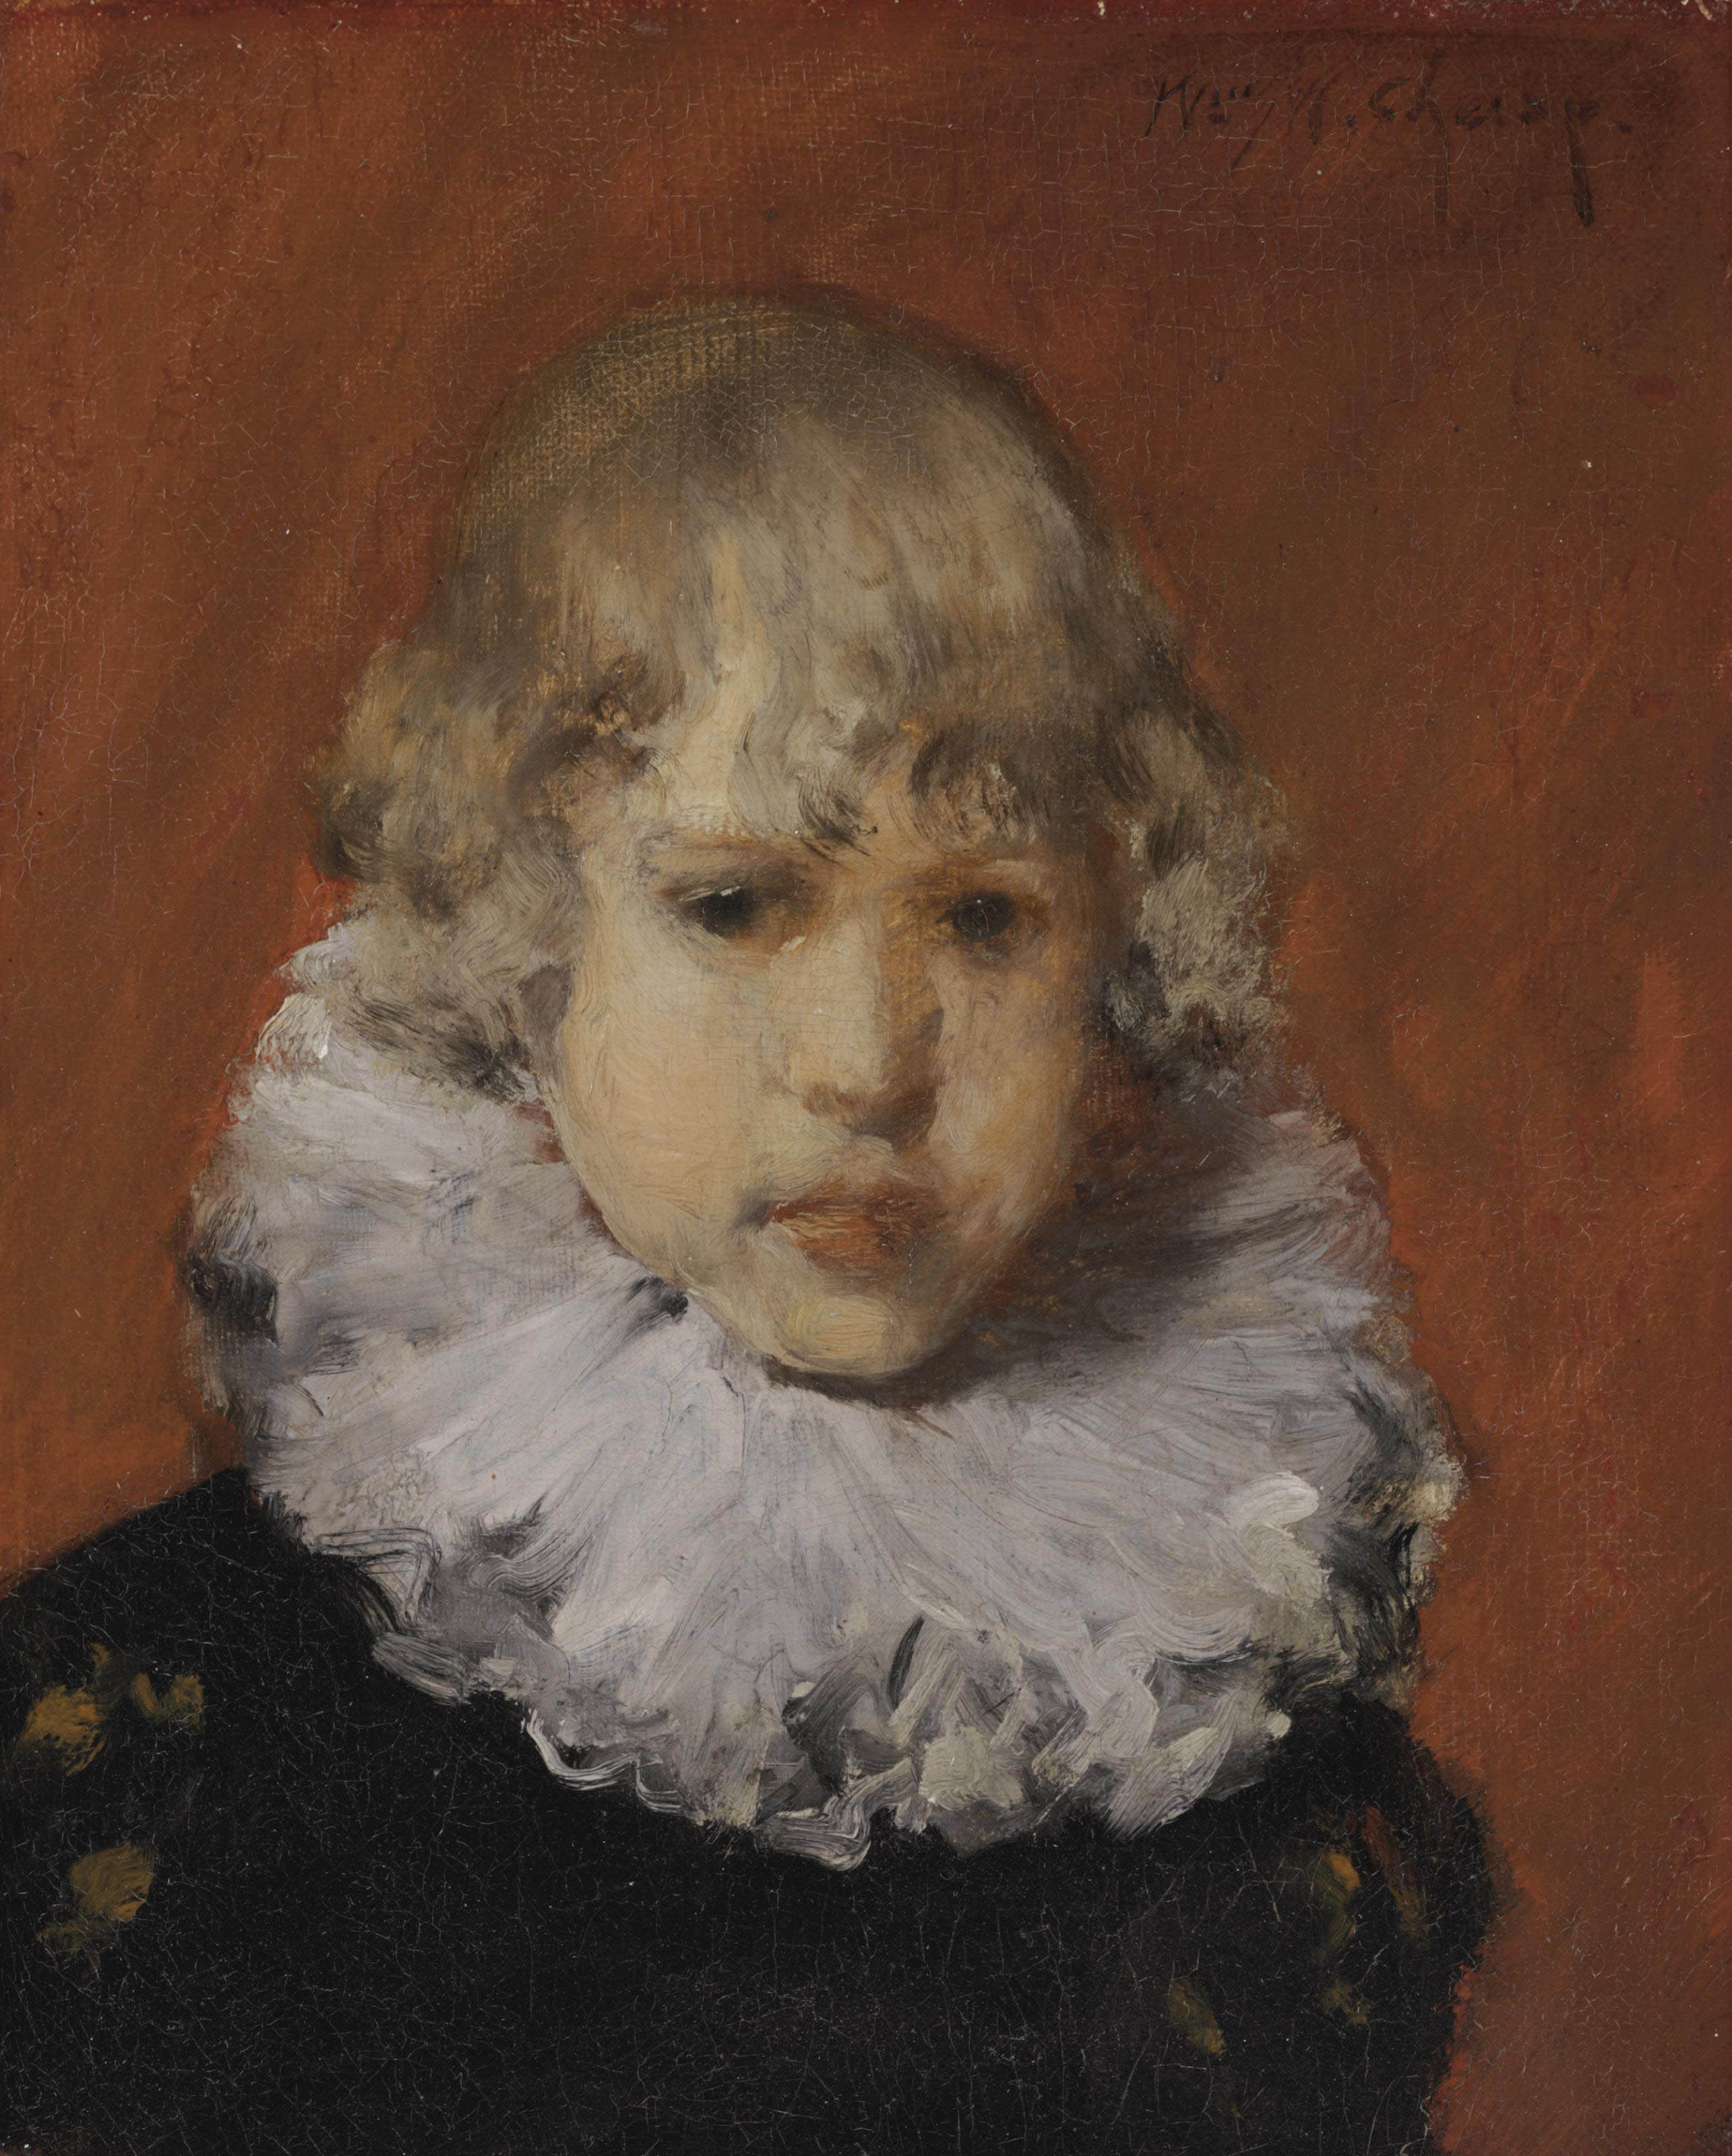 Young Boy with White Ruffled Collar